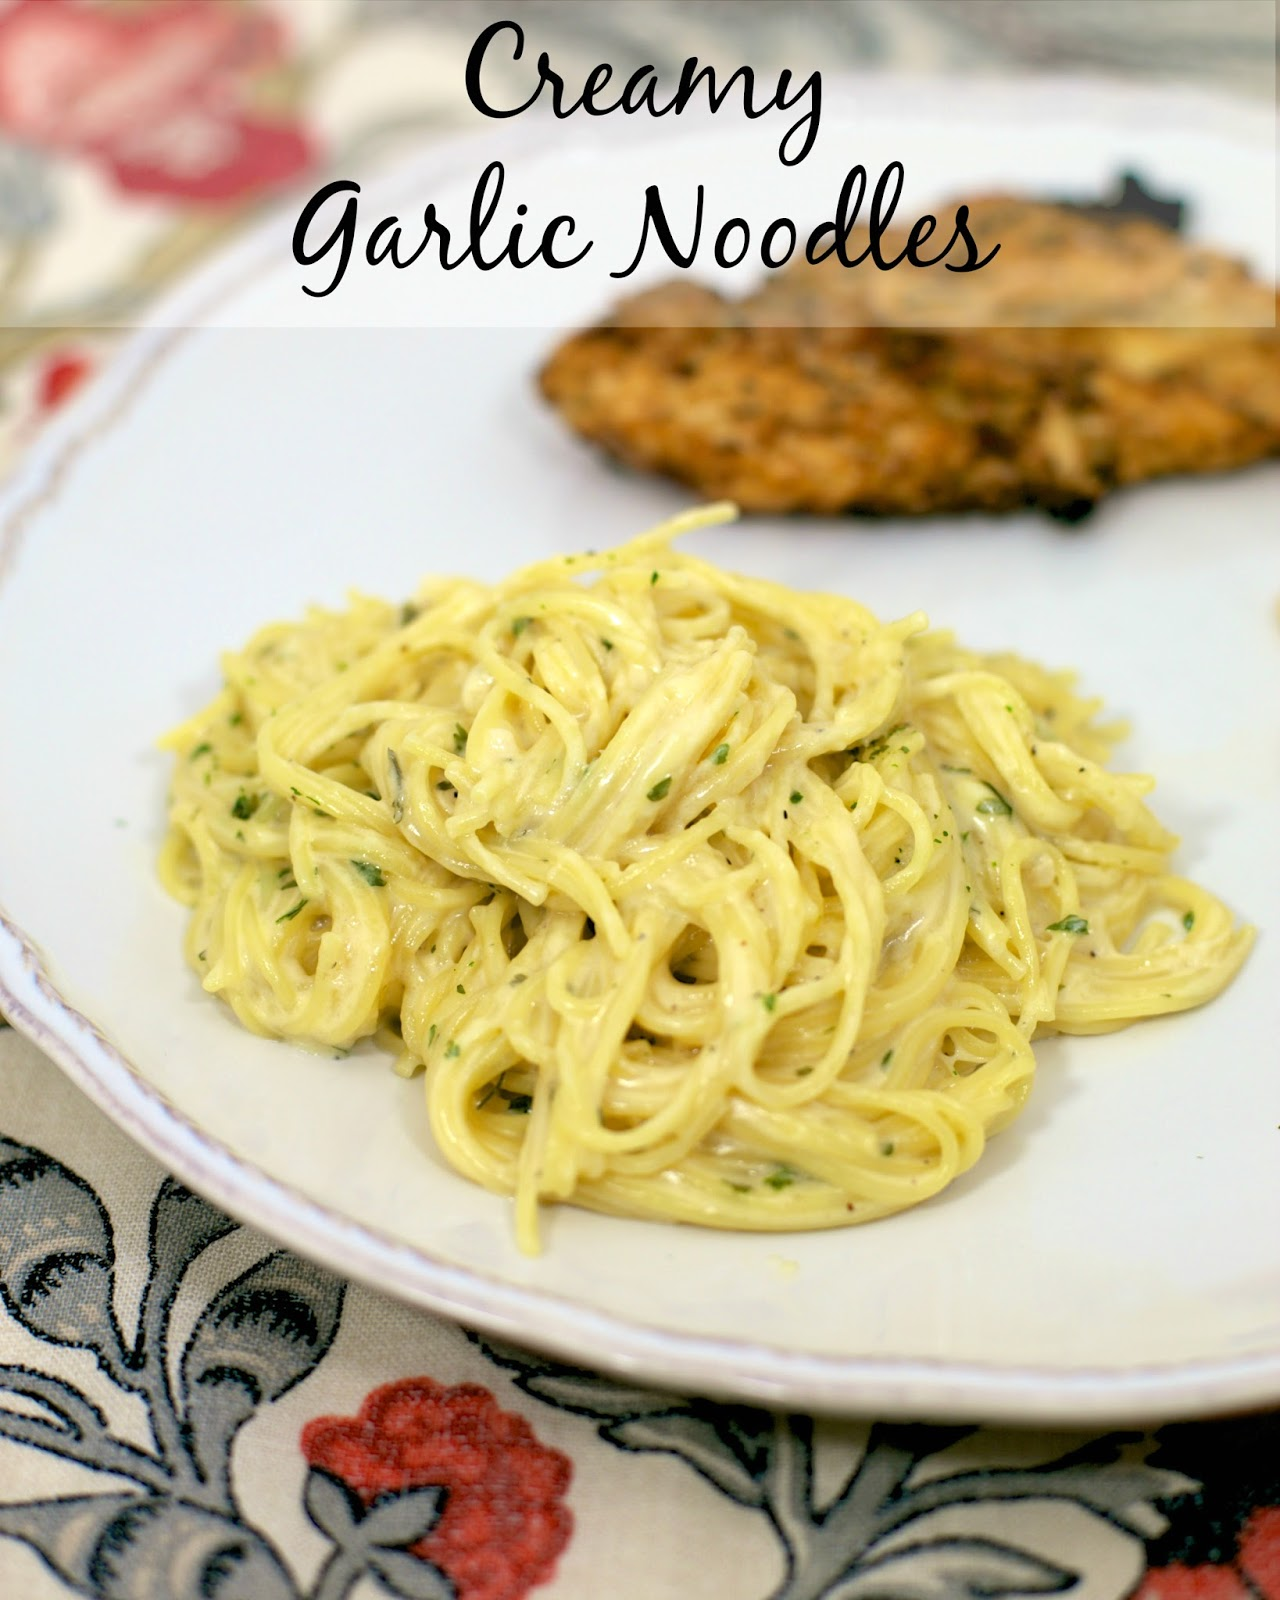 Angel Hair Pasta With Green Garlic Cream Sauce Recipes — Dishmaps